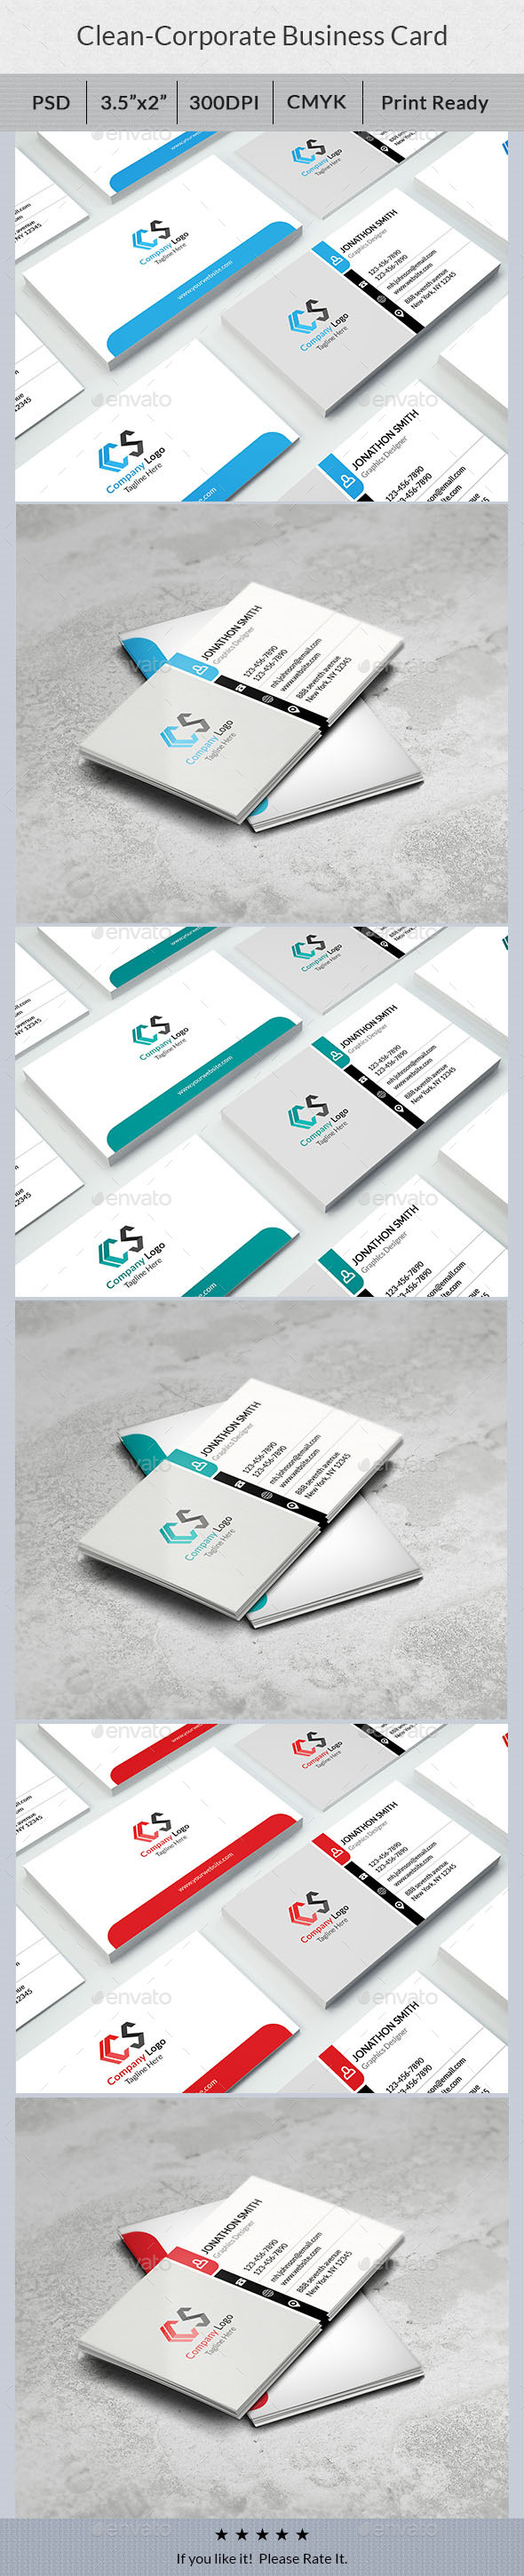 Clean - Corporate Business Card - Corporate Business Cards